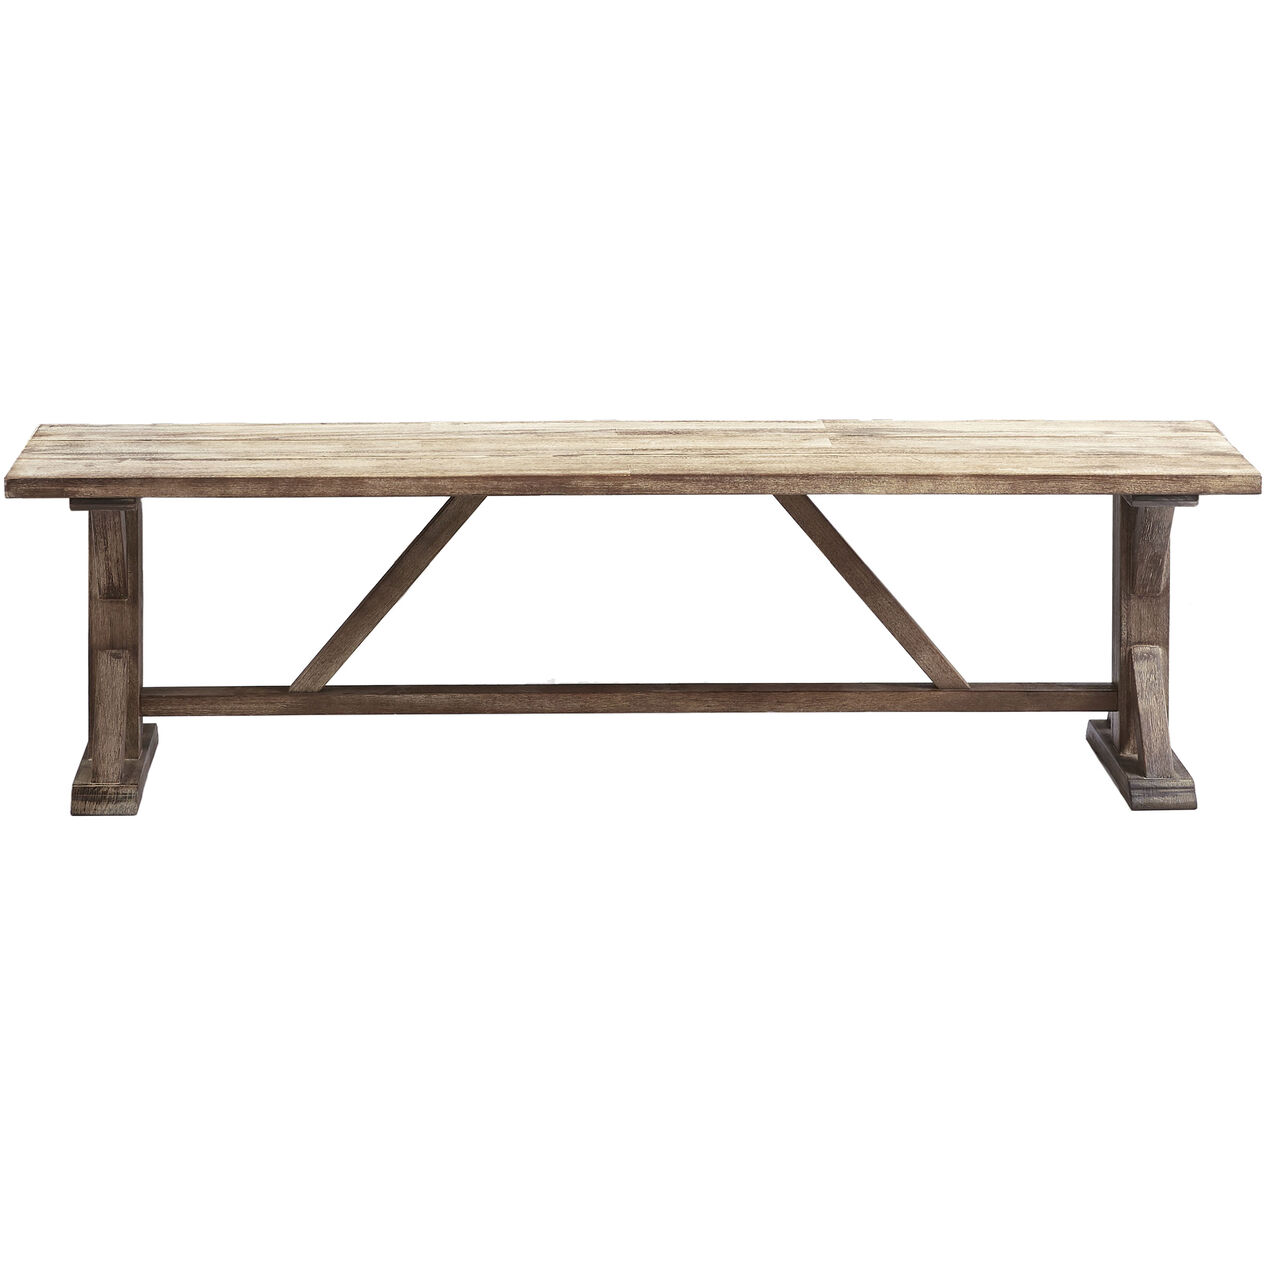 Camden Wood Trestle Bench 66 In At Home